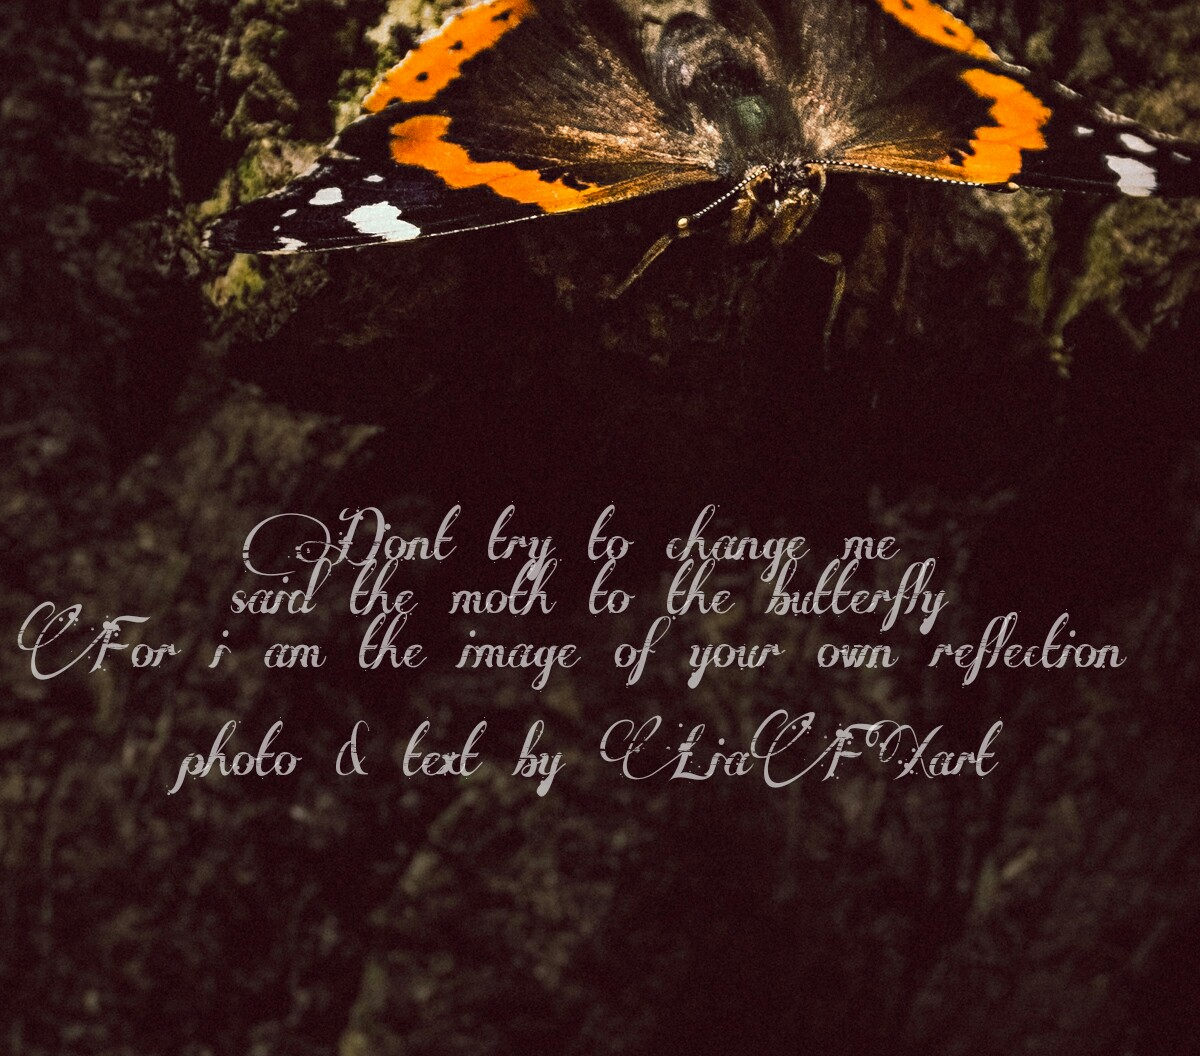 The Moth & The Butterfly